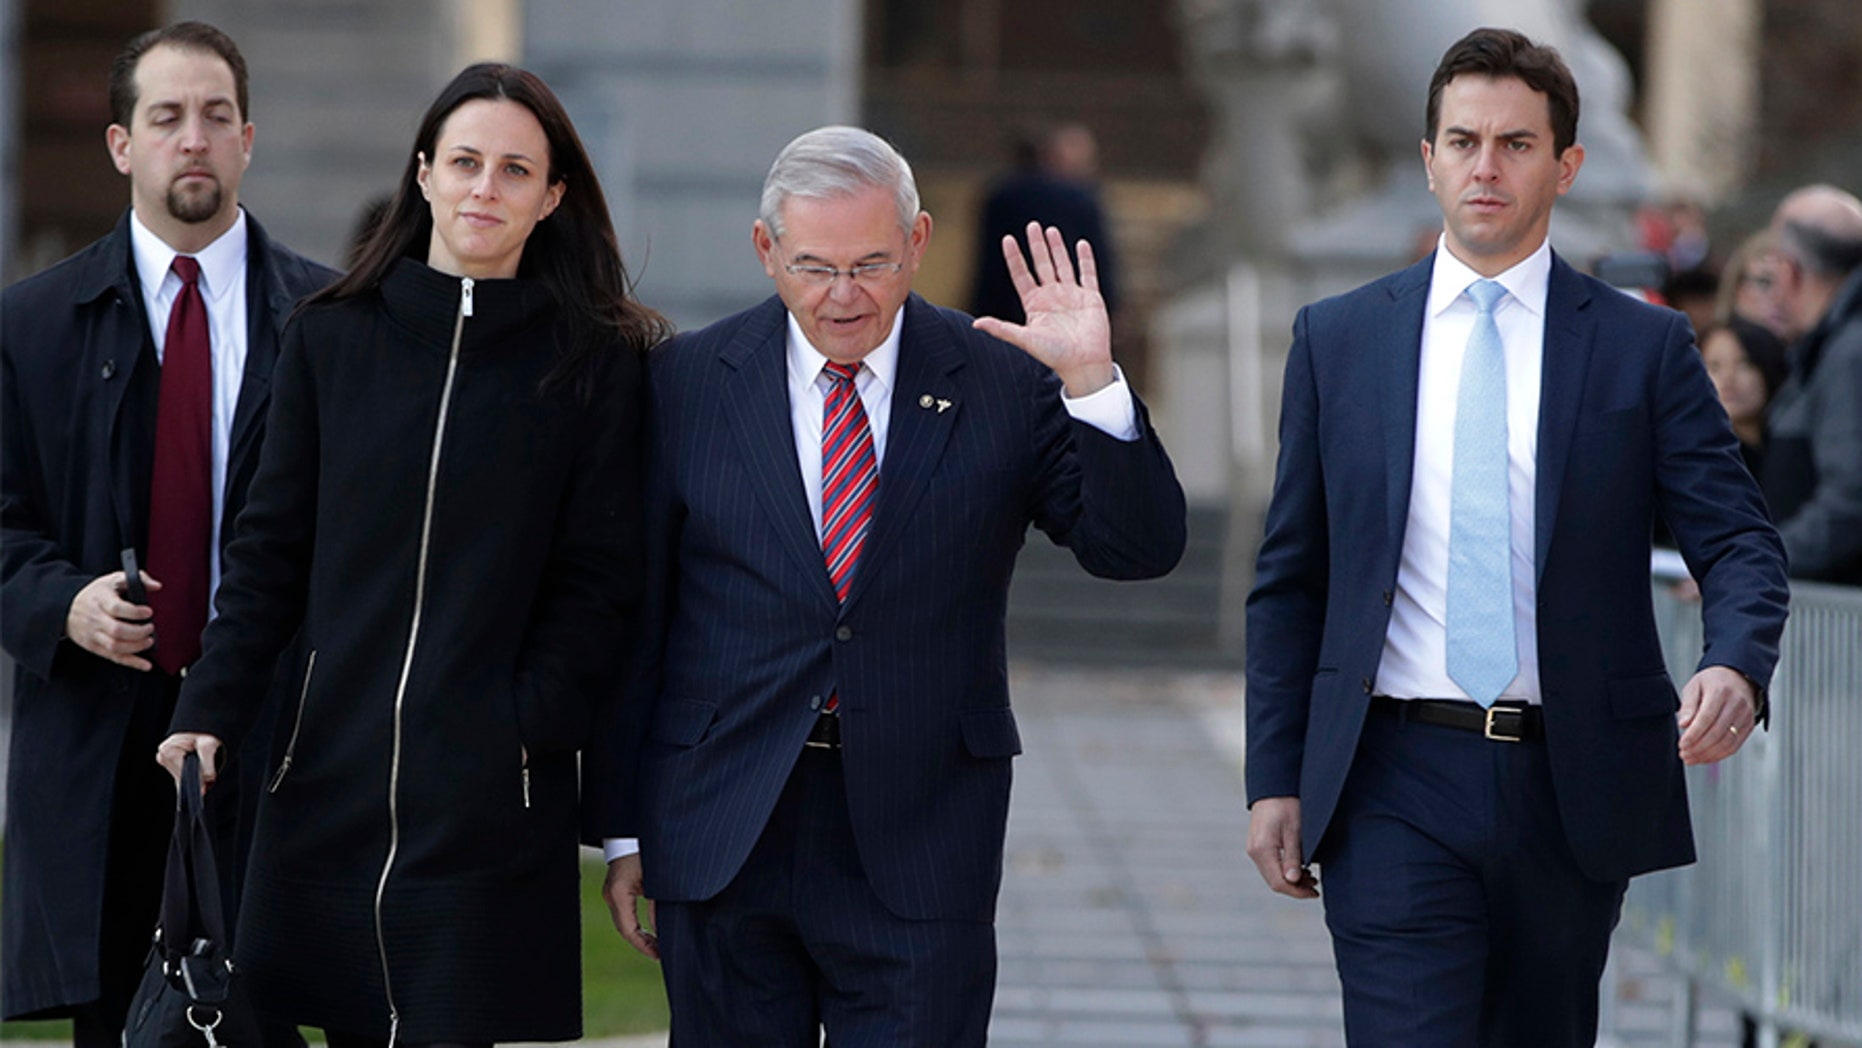 Sen. Bob Menendez, center, walks with his son, Rob, right, and his daughter, Alicia, while leaving Martin Luther King Jr. Federal Courthouse after U.S. District Judge William H. Walls declared a mistrial in Menendez's federal corruption trial, Thursday, Nov. 16, 2017, in Newark, N.J.